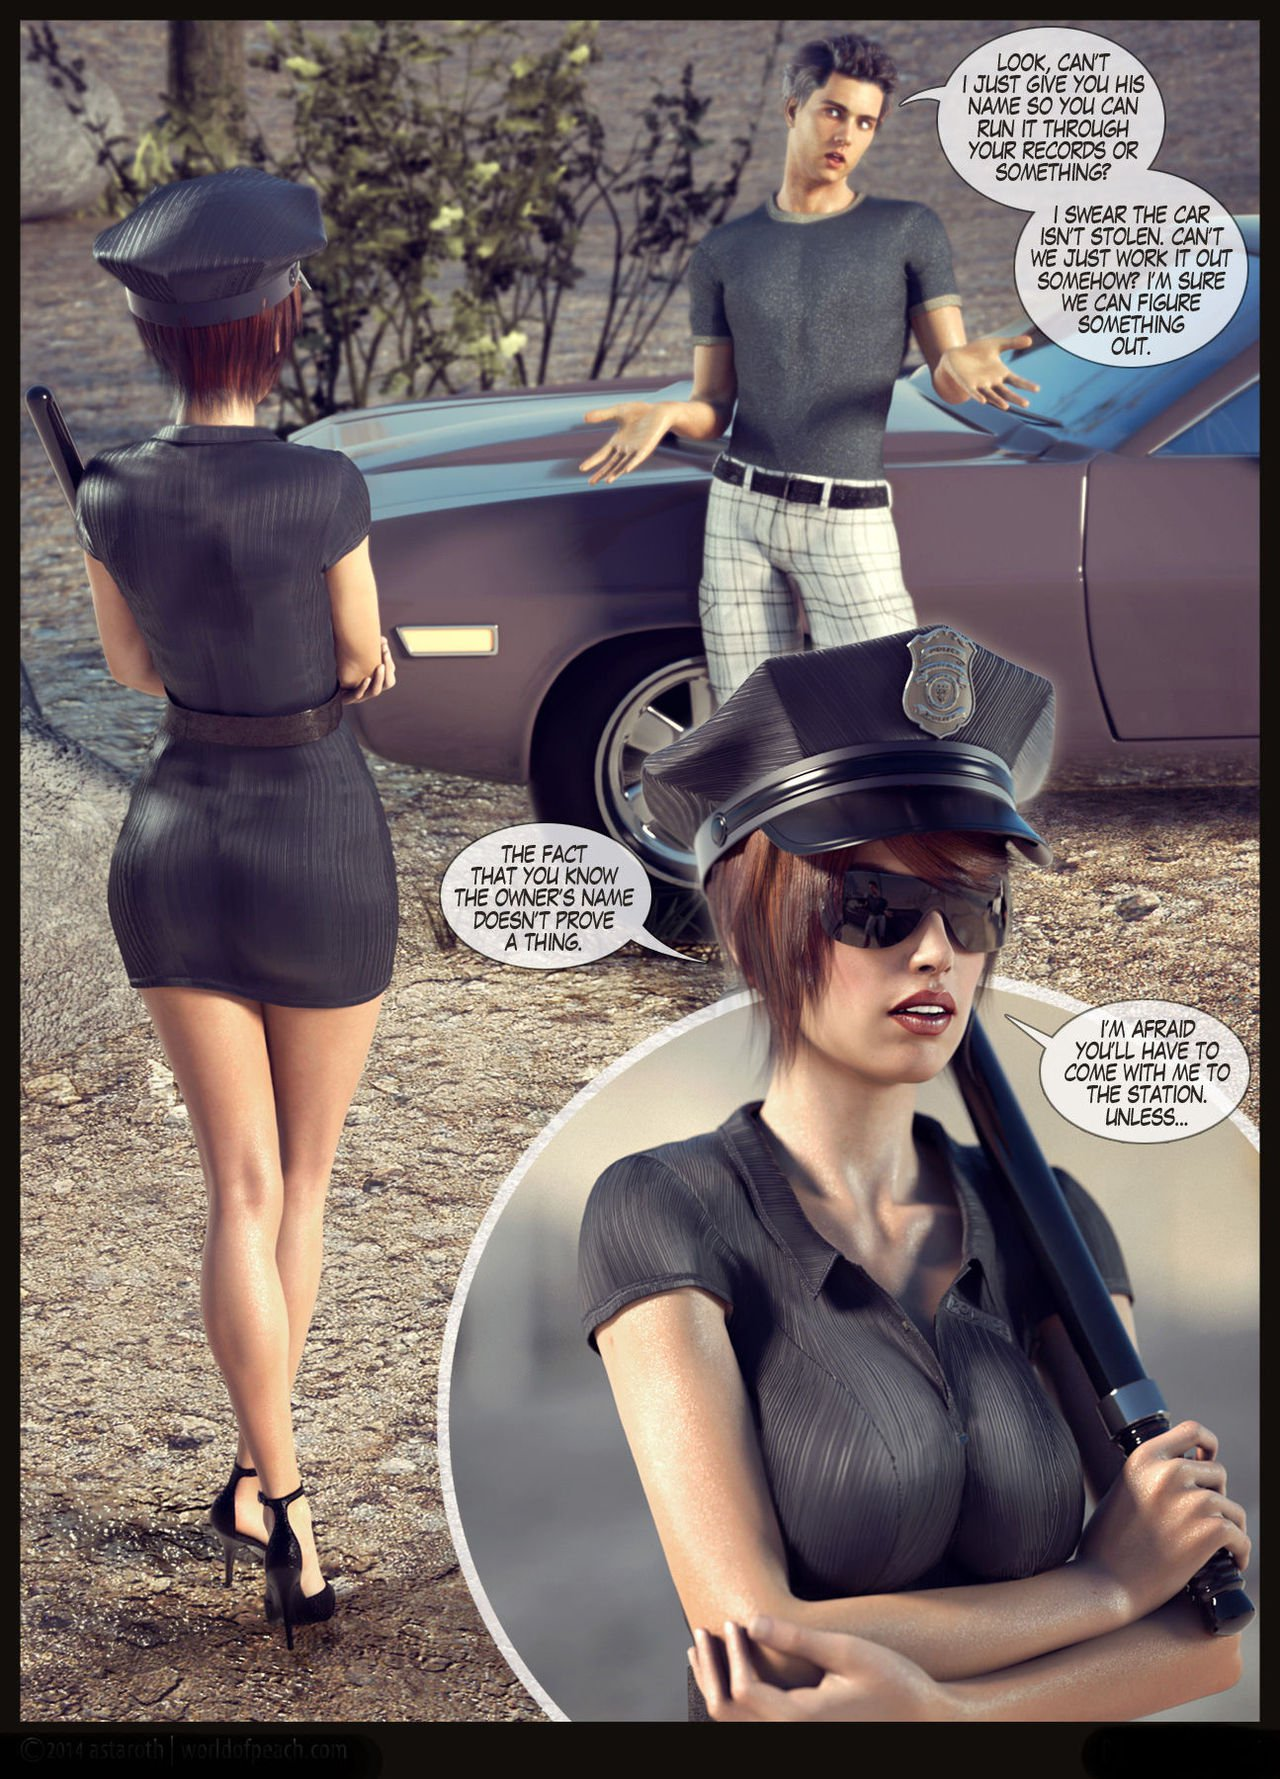 World of peach – busted!